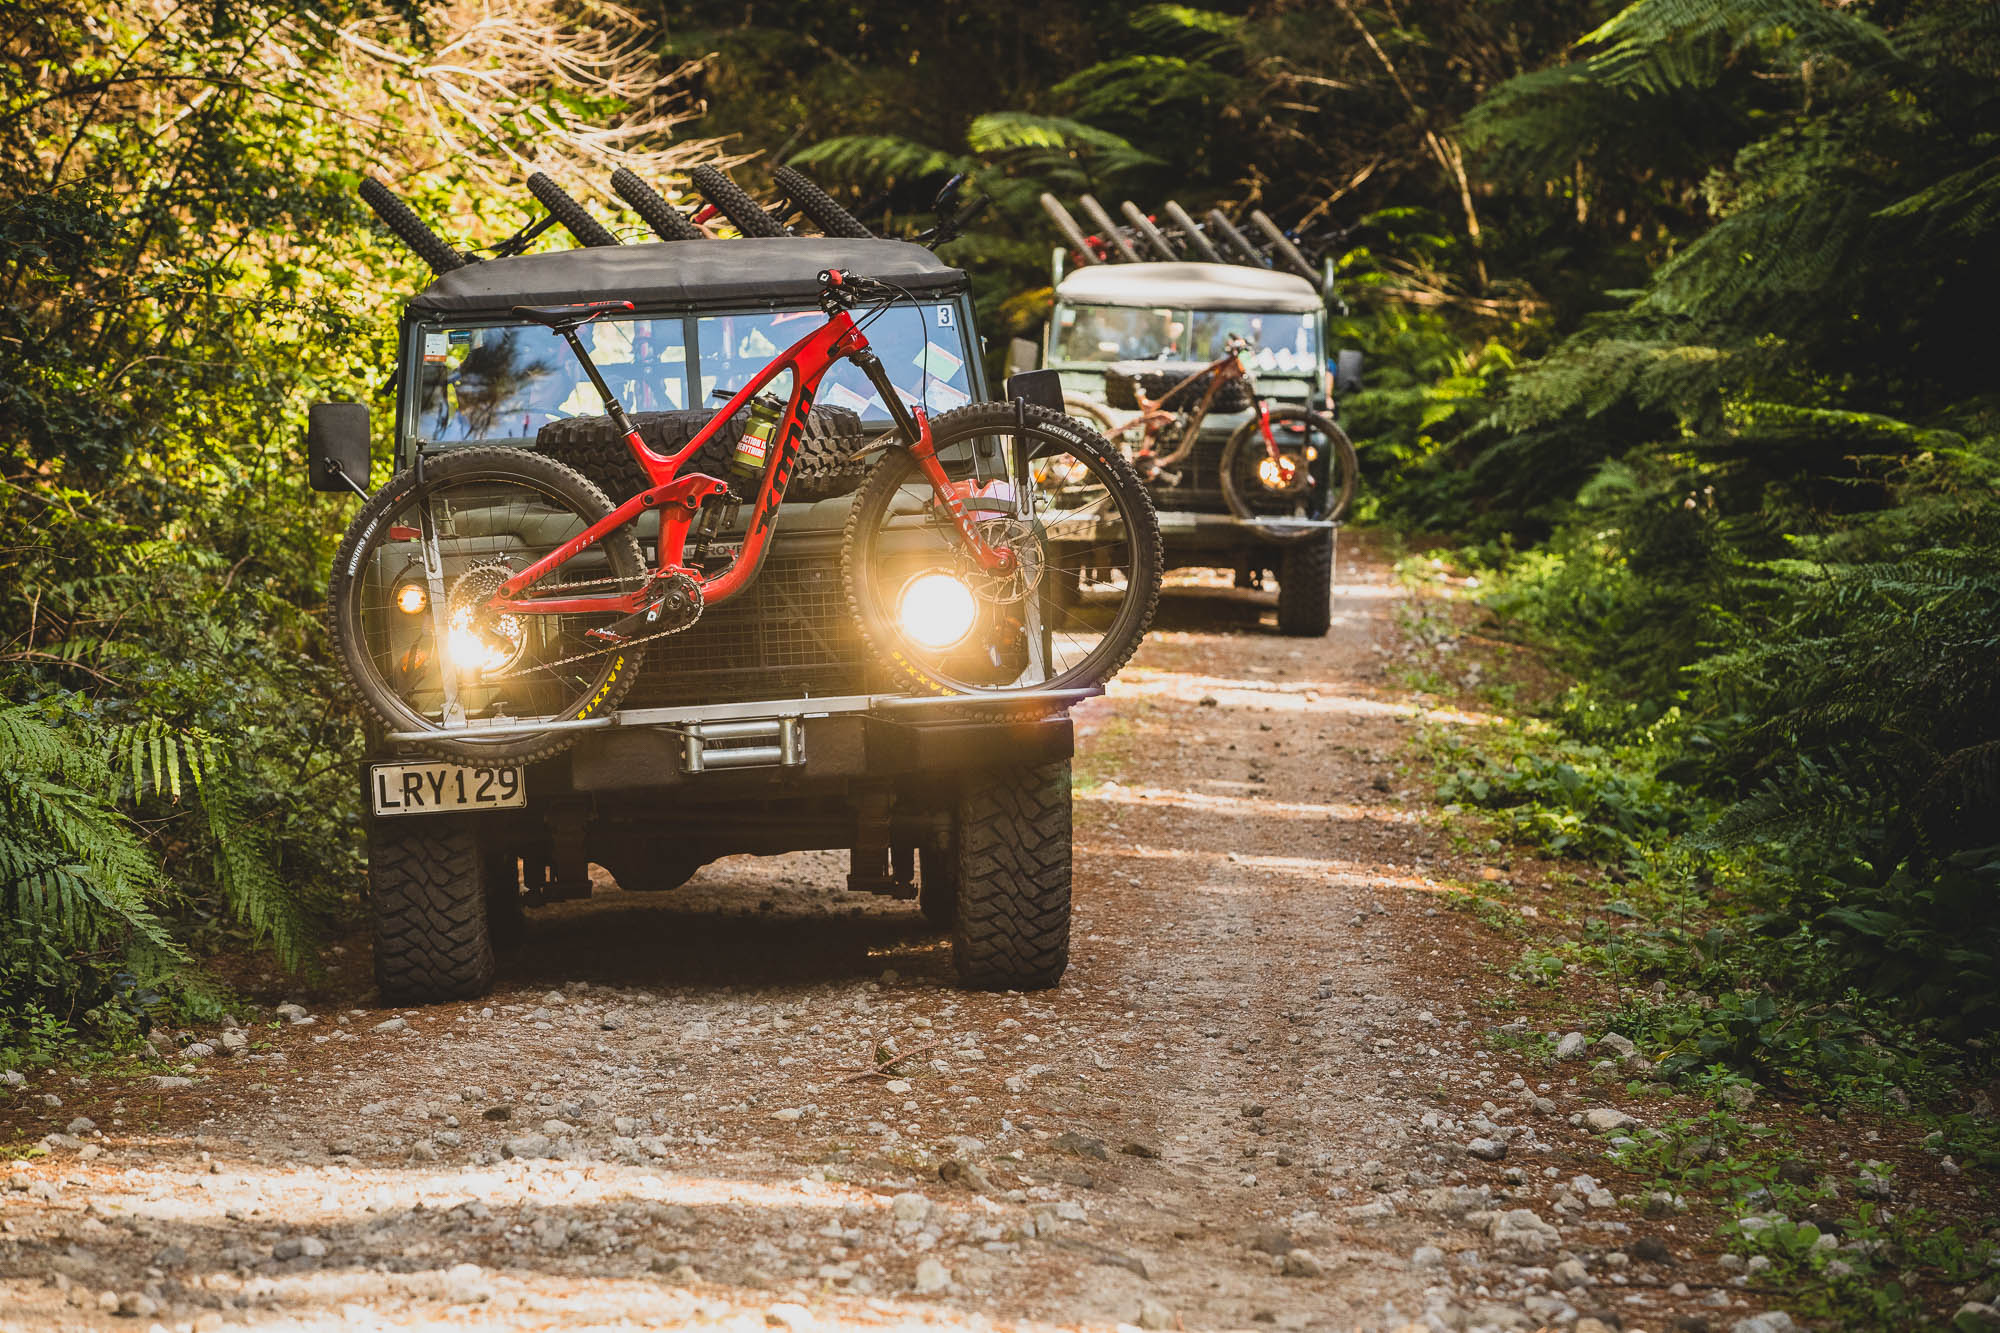 Into the Woods: Kona's Gravity Team Ride Rotorua with the Locals